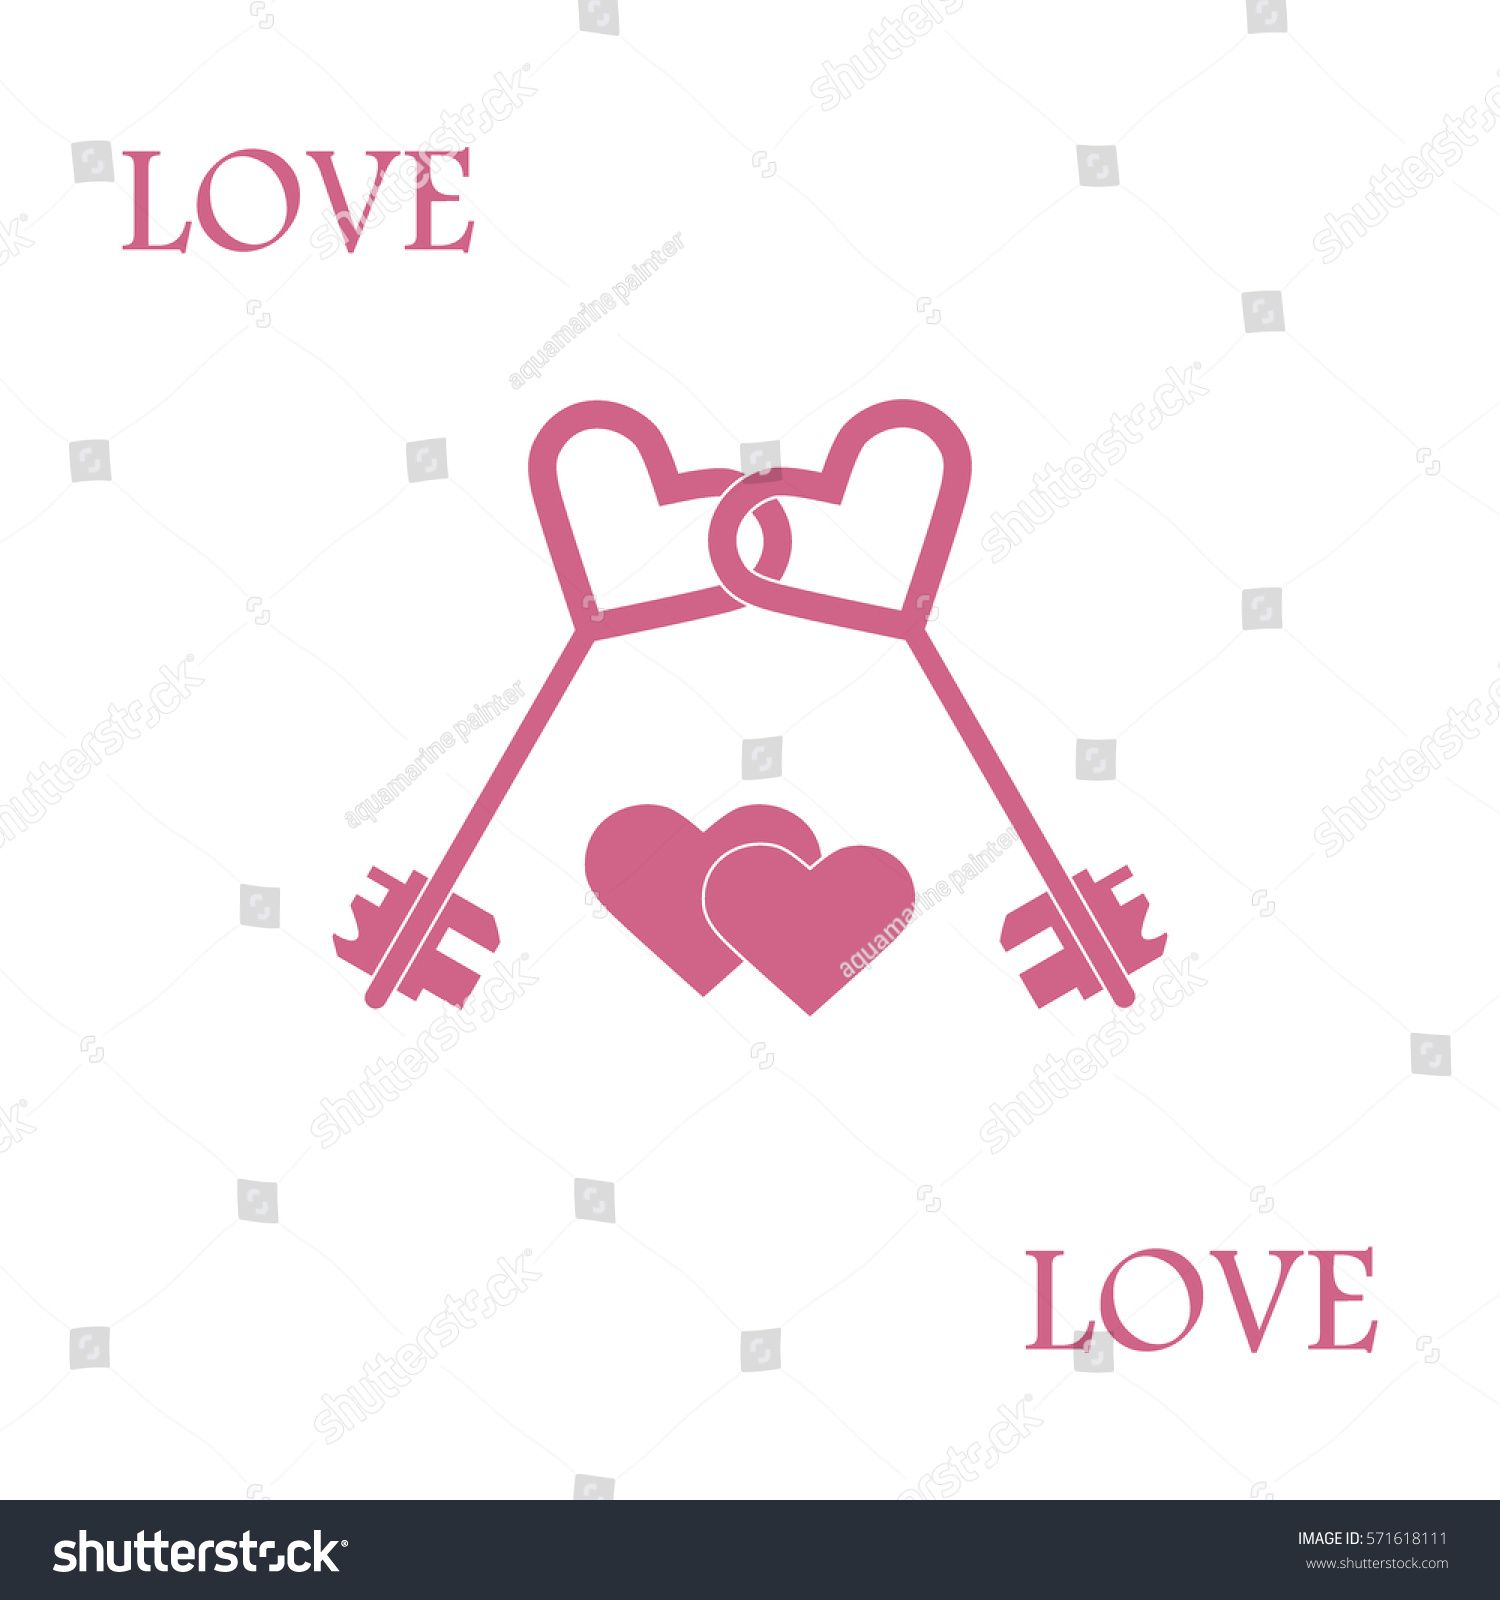 Cute vector illustration love symbols heart stock vector 571618111 cute vector illustration of love symbols heart key icon and two hearts romantic collection buycottarizona Images